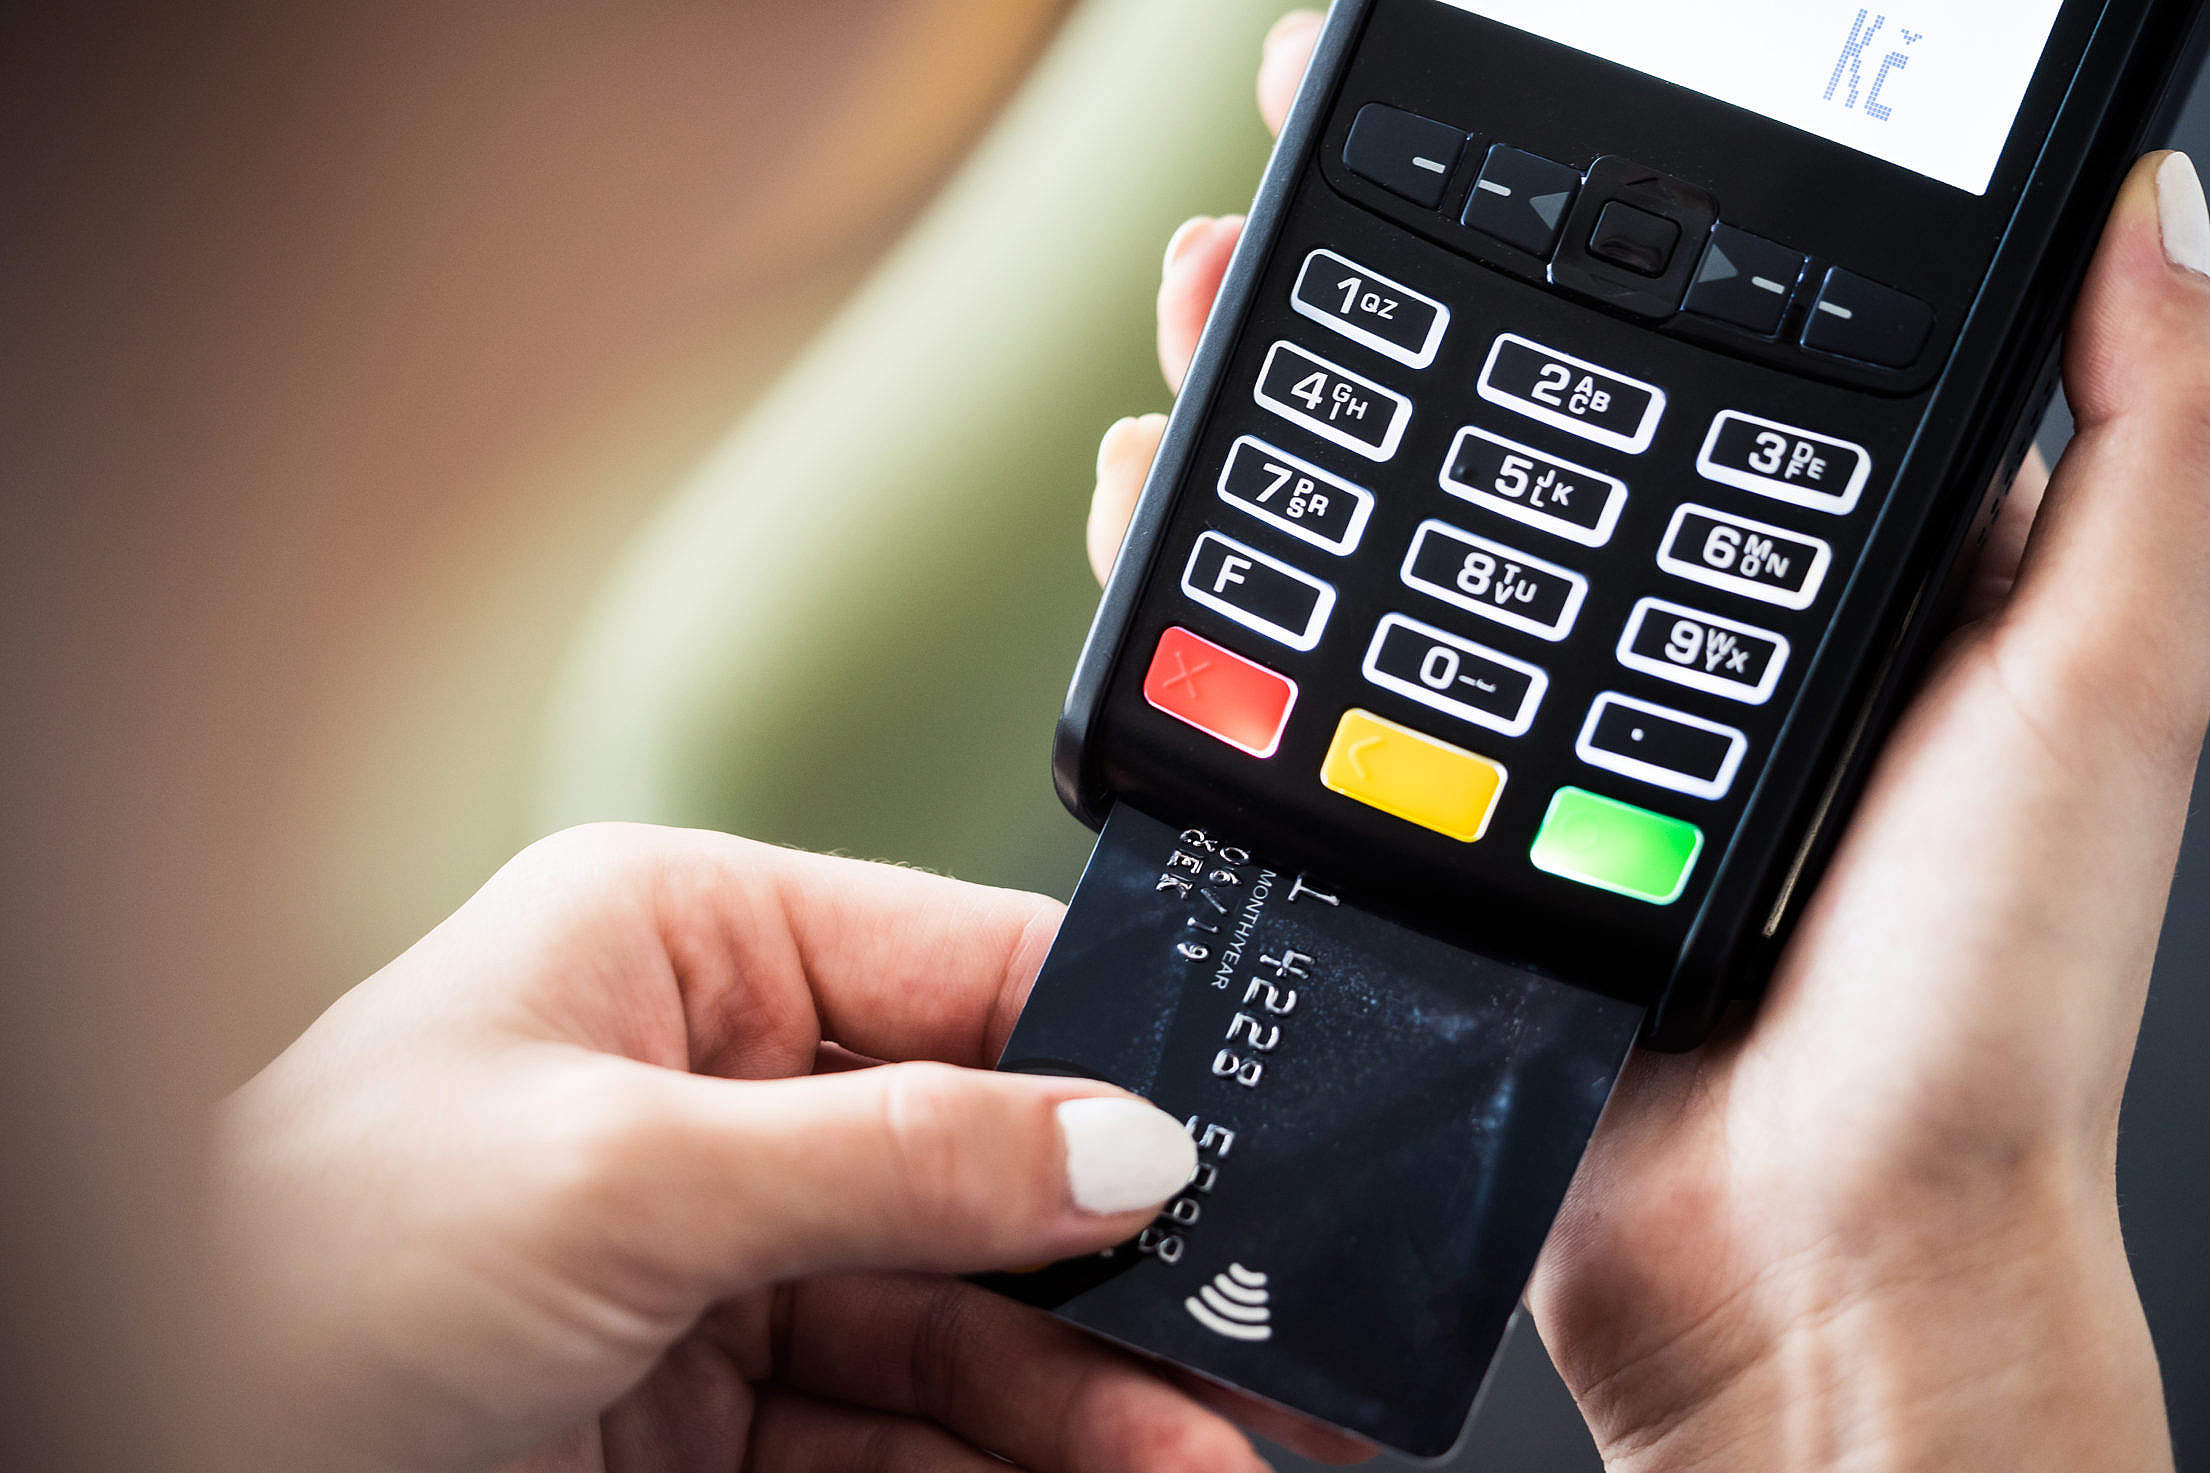 Credit Card Terminal Payment Free Stock Photo